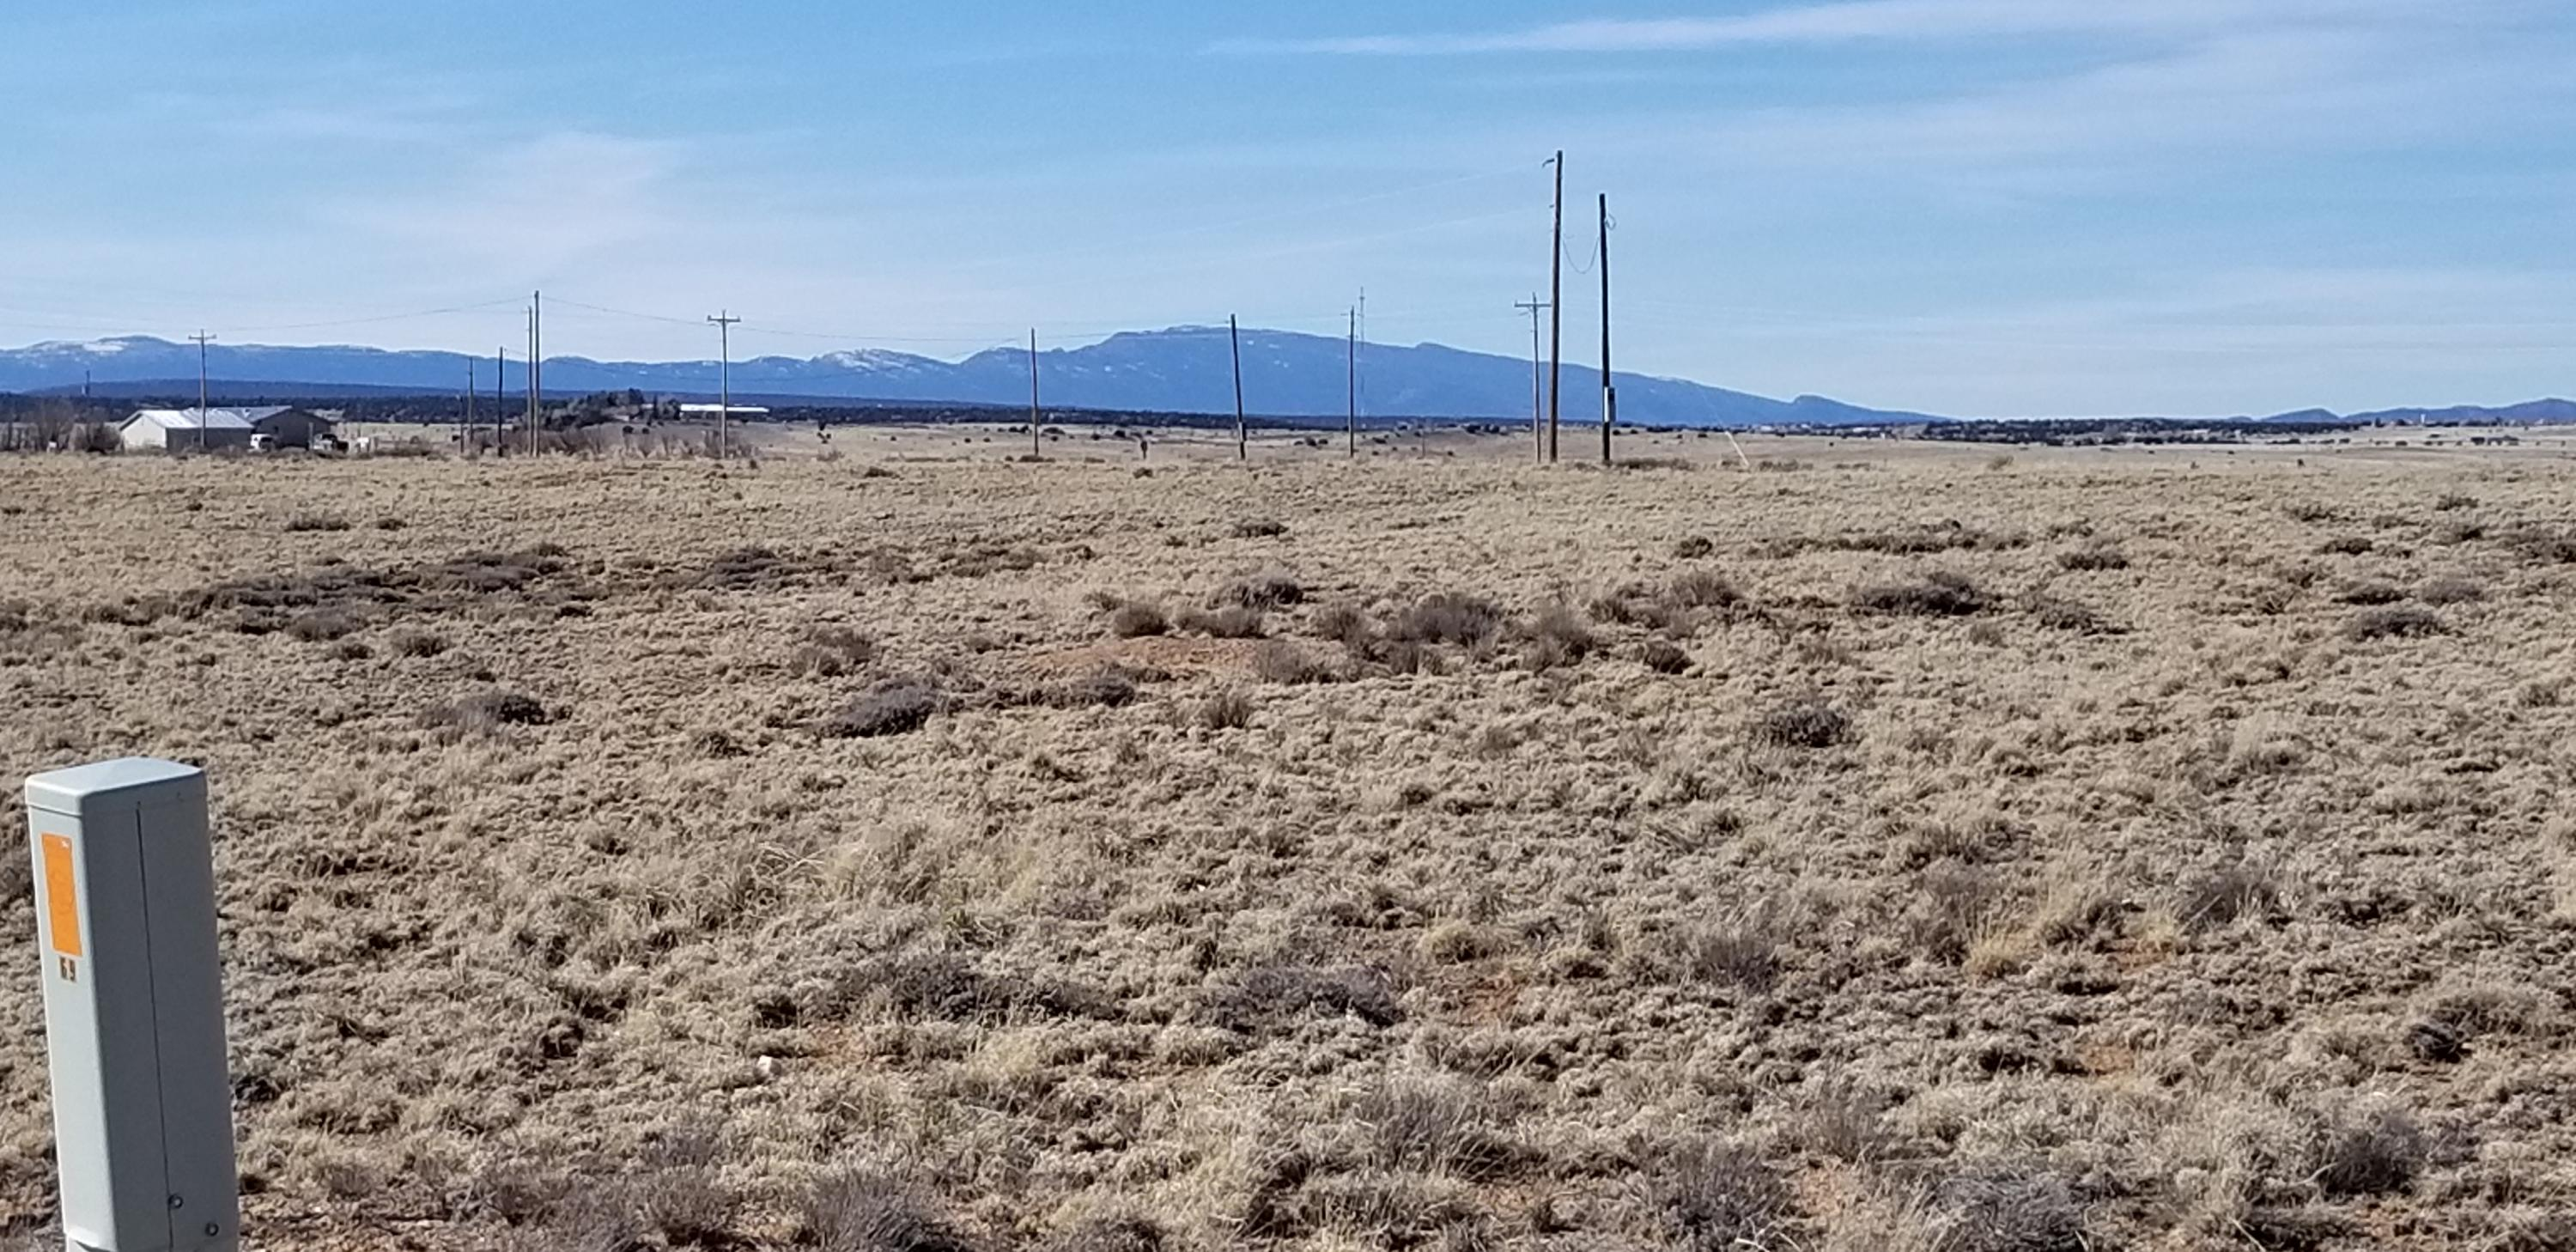 Lot 11 Broadmoor Road, Moriarty, NM 87035 - Moriarty, NM real estate listing